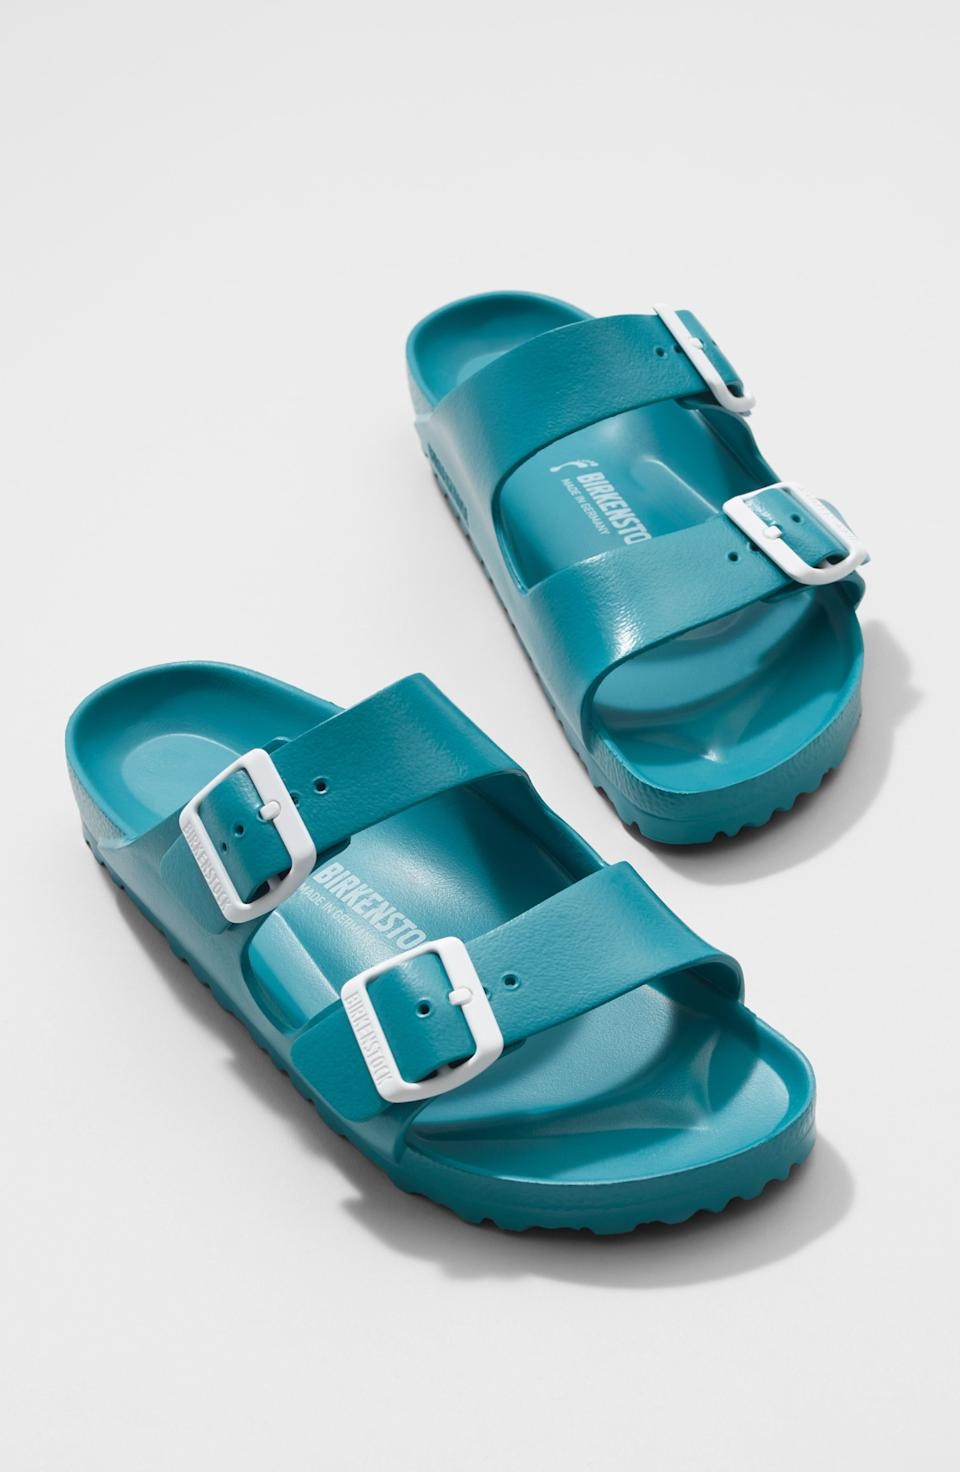 """<p><strong>BIRKENSTOCK</strong></p><p>nordstrom.com</p><p><strong>$44.95</strong></p><p><a href=""""https://go.redirectingat.com?id=74968X1596630&url=https%3A%2F%2Fwww.nordstrom.com%2Fs%2Fbirkenstock-essentials-arizona-waterproof-slide-sandal-women-nordstrom-exclusive%2F4152948&sref=https%3A%2F%2Fwww.countryliving.com%2Fshopping%2Fgifts%2Fnews%2Fg4859%2Fbest-friend-gifts%2F"""" rel=""""nofollow noopener"""" target=""""_blank"""" data-ylk=""""slk:Shop Now"""" class=""""link rapid-noclick-resp"""">Shop Now</a></p><p>These waterproof Birkenstock sandals are perfect for summer and half the price of the leather option. </p>"""